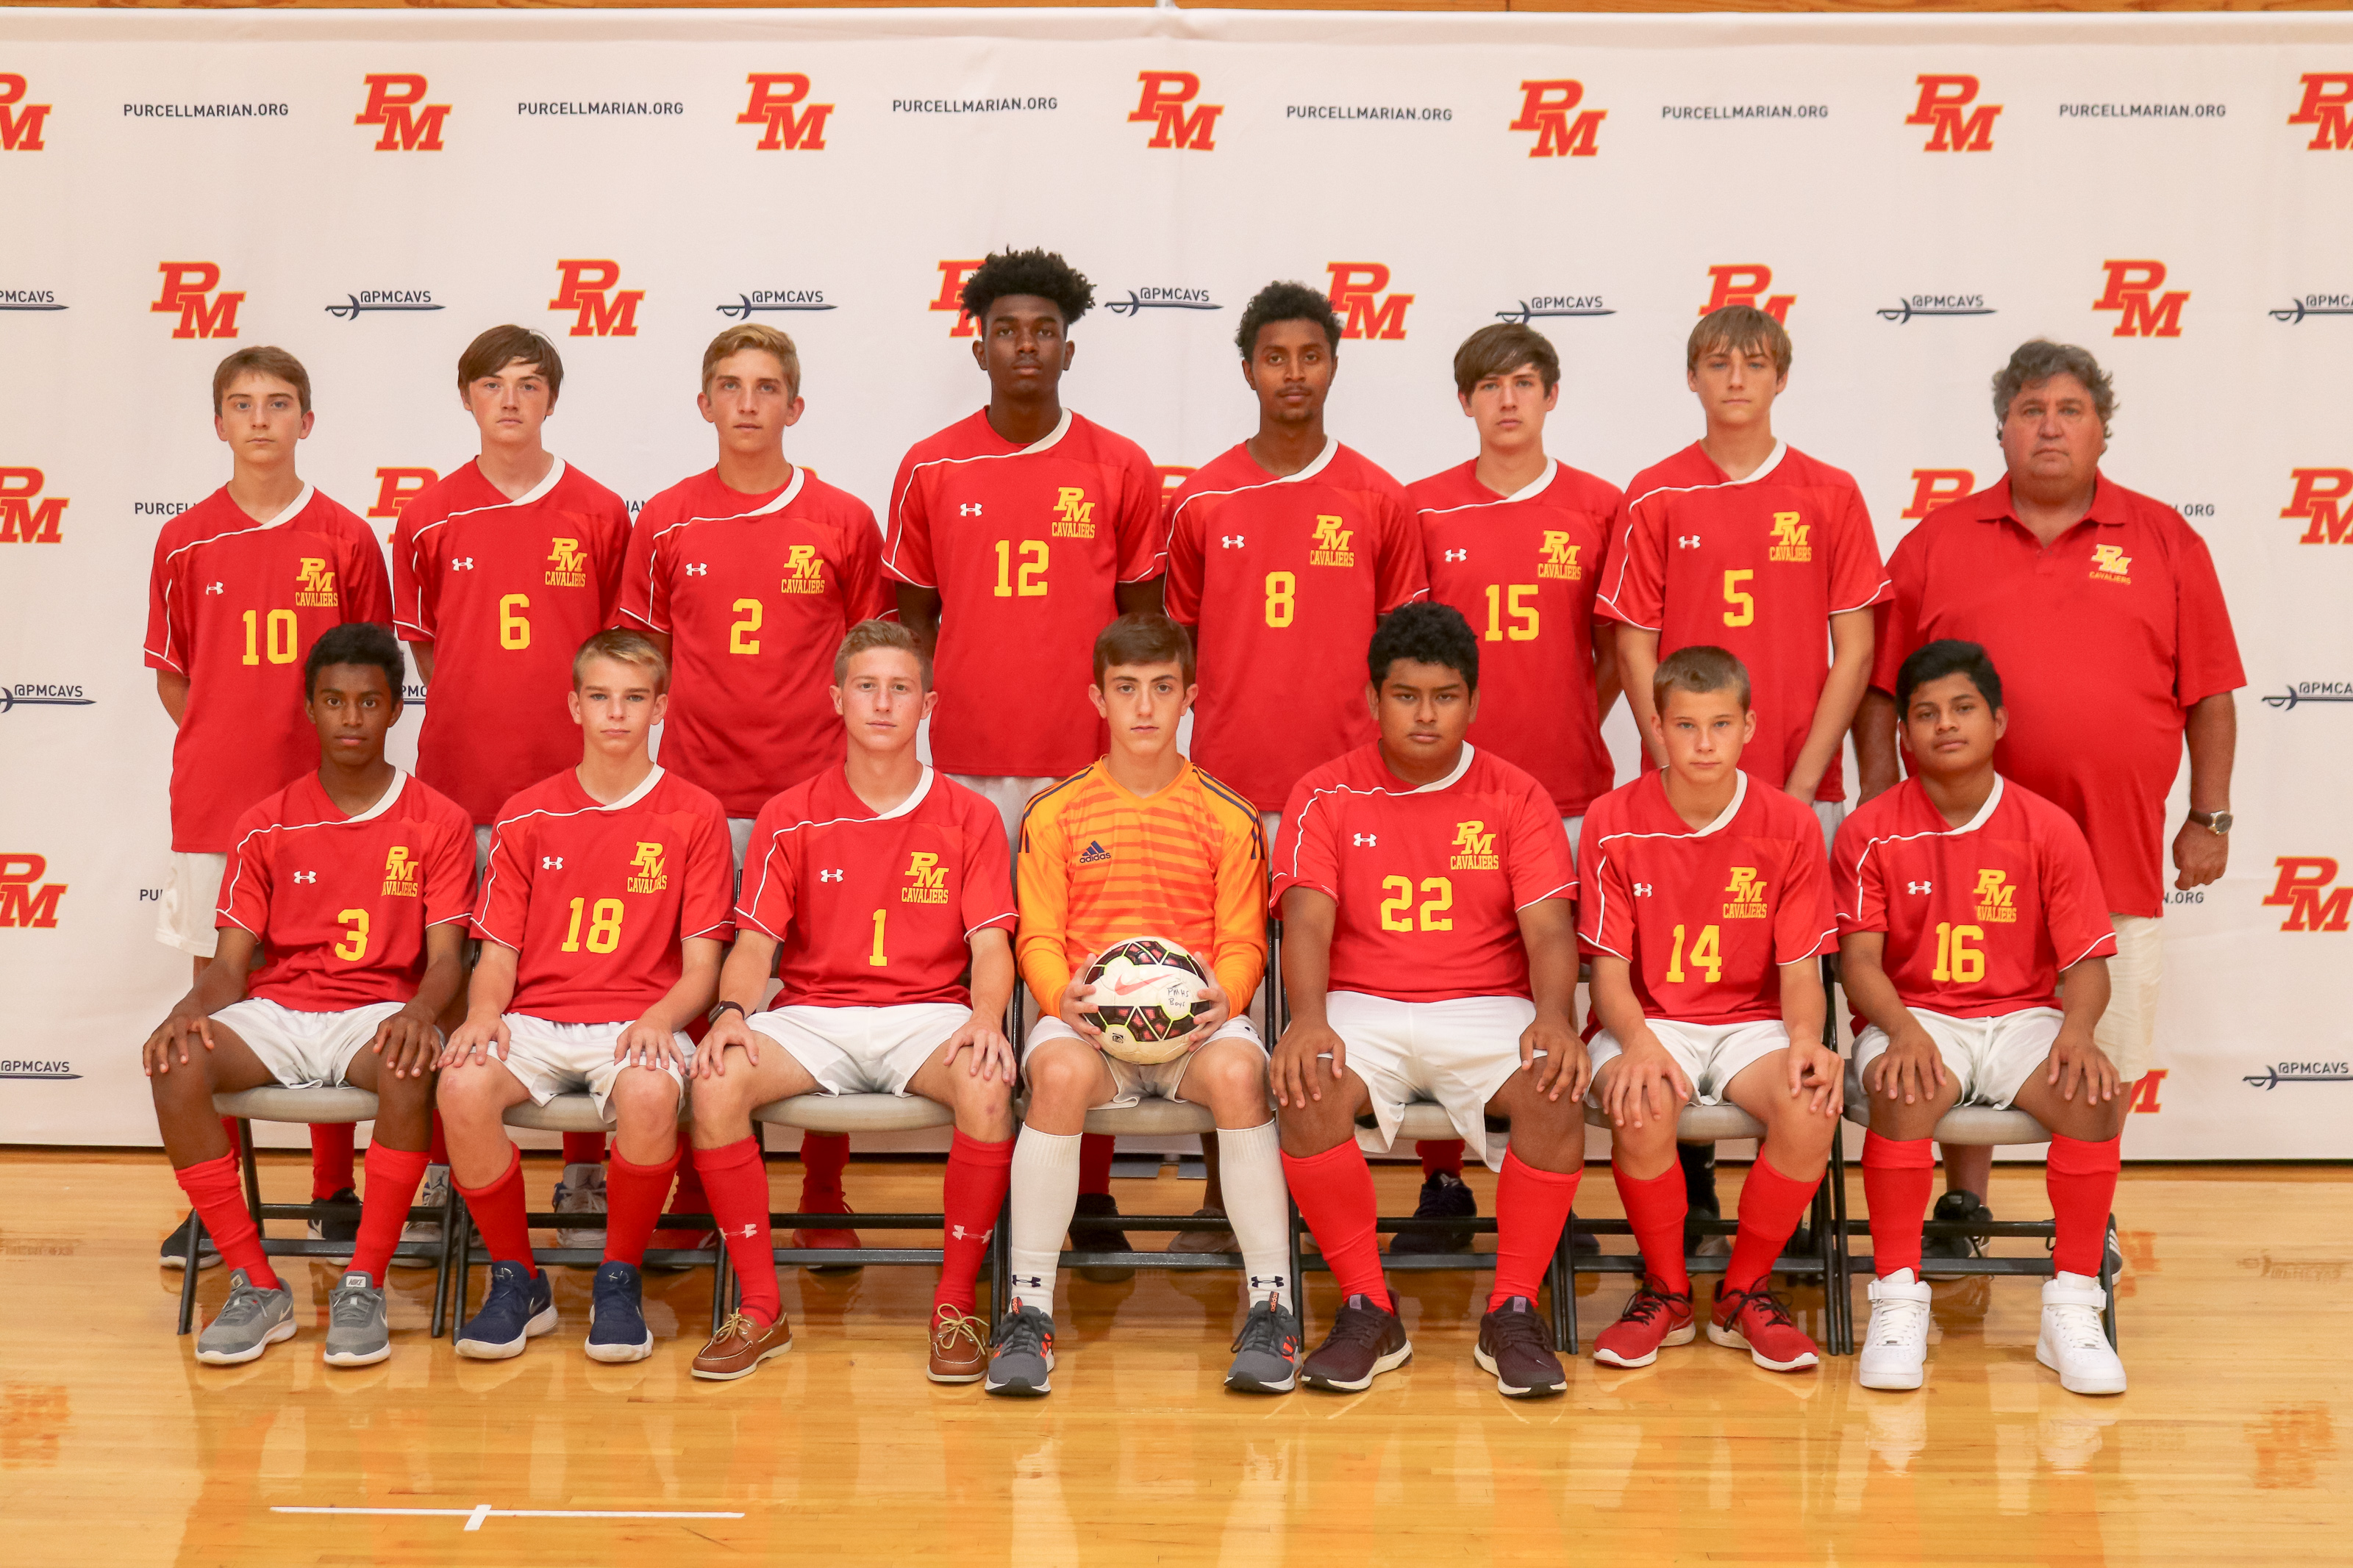 Purcell Marian Team Home Purcell Marian Cavaliers Sports